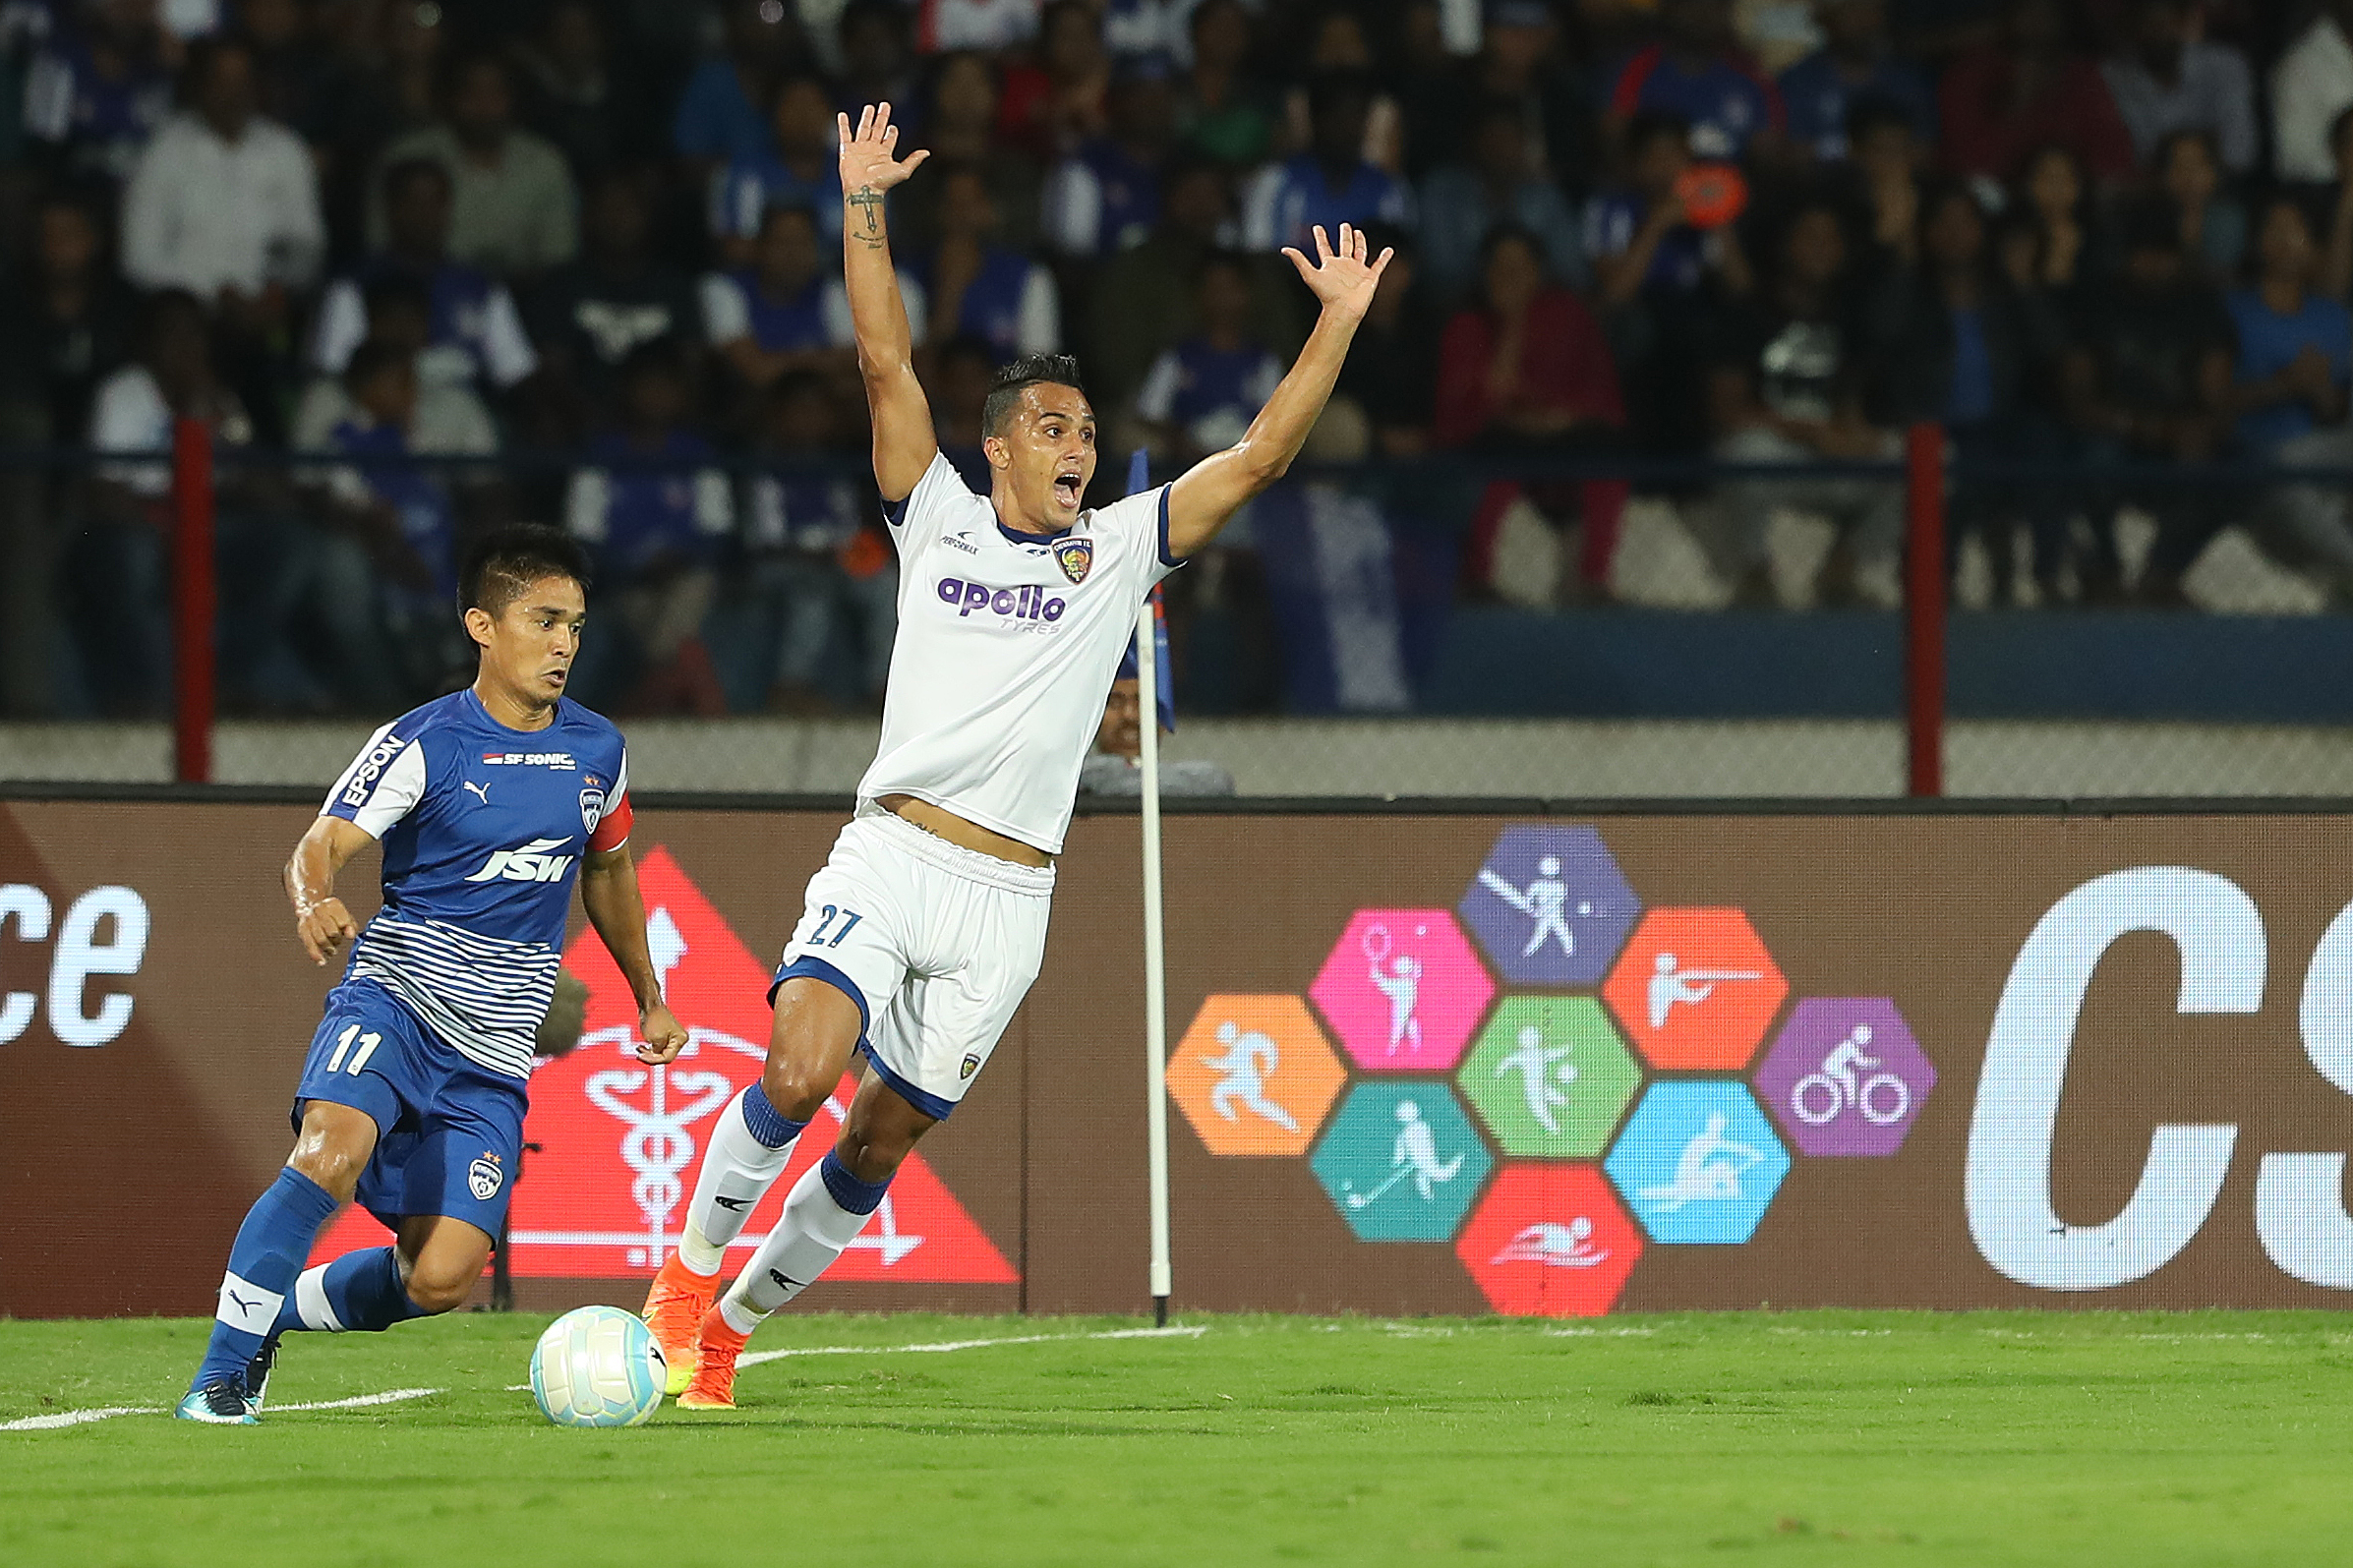 Mailson Alves Sunil Chhetri Bengaluru FC Chennaiyin FC 2017-18 Indian Super League Final